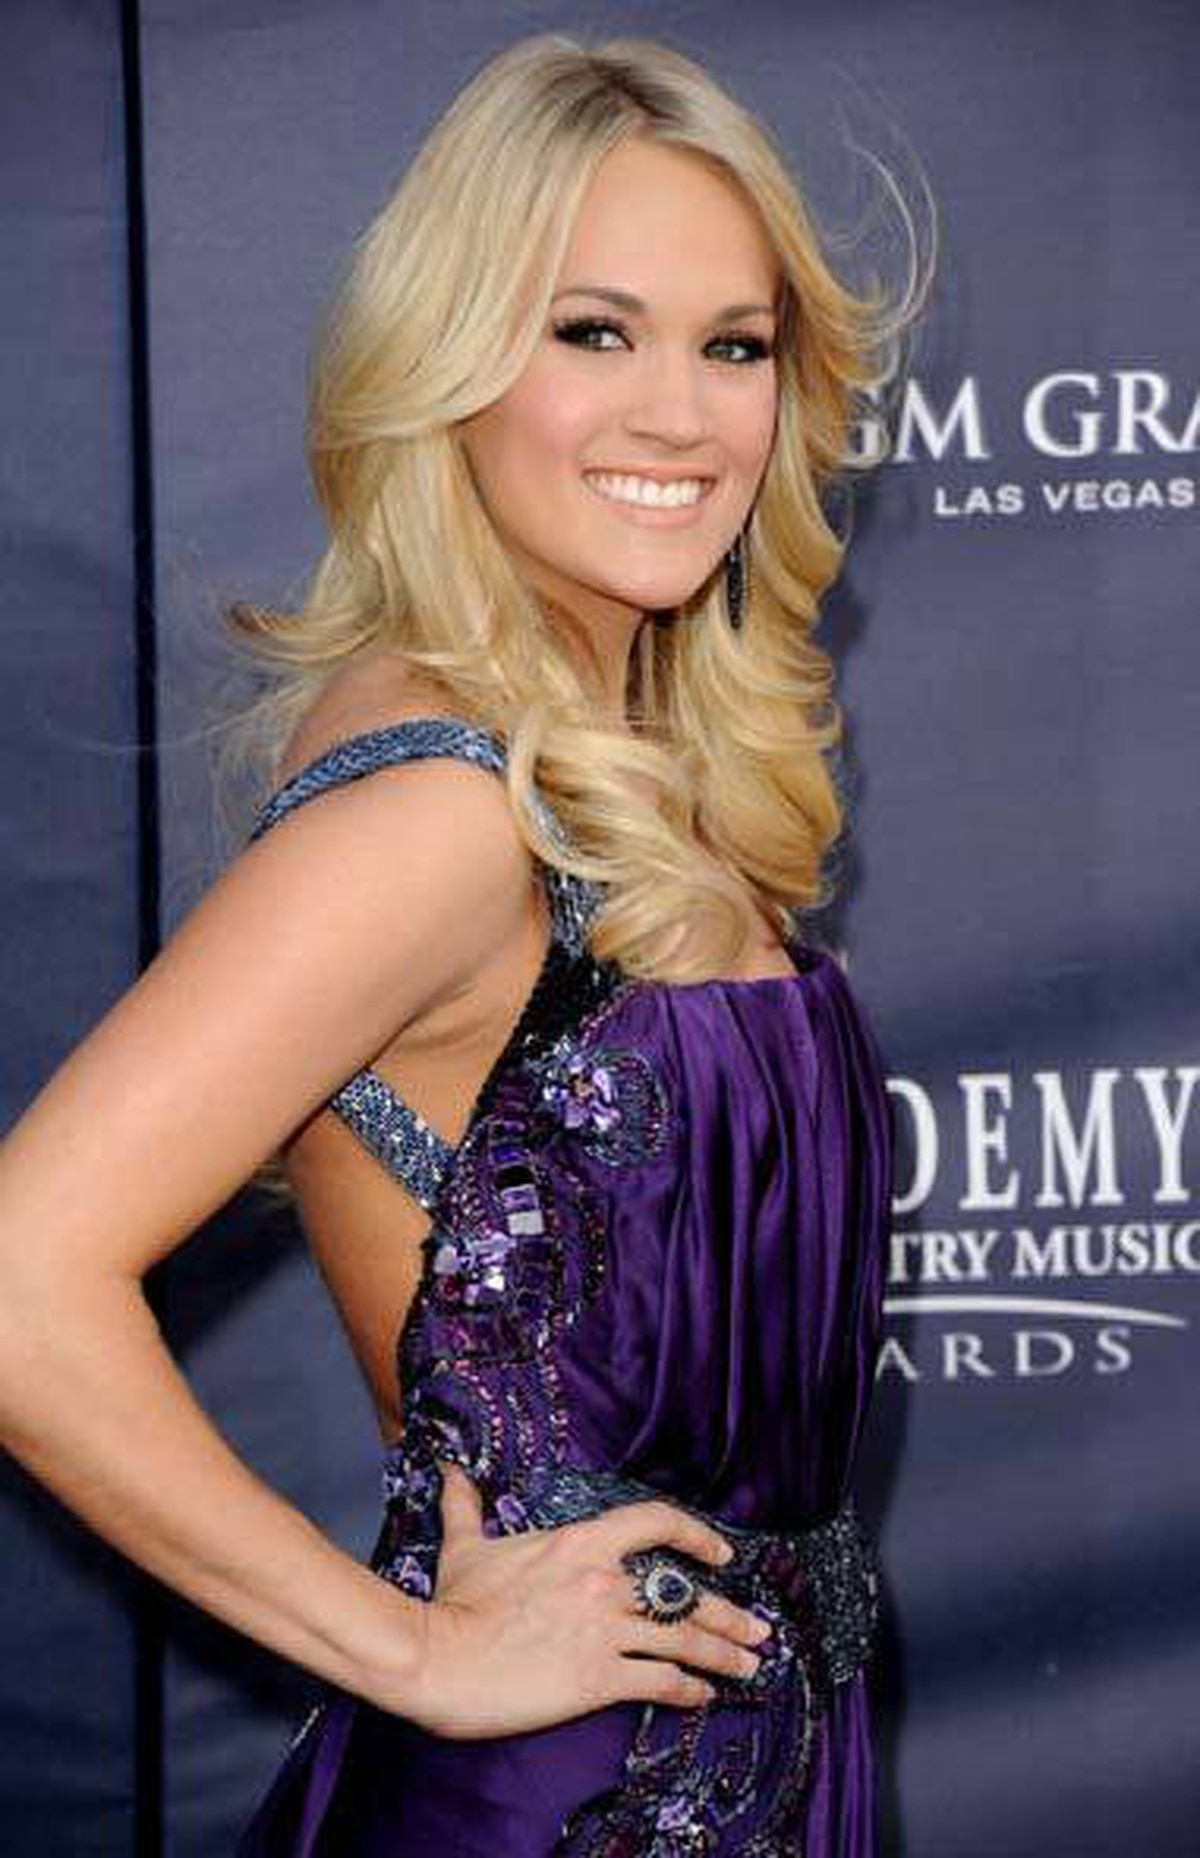 Hockey wife and country singer Carrie Underwood arrives at the Country Music Awards in Las Vegas on Sunday.